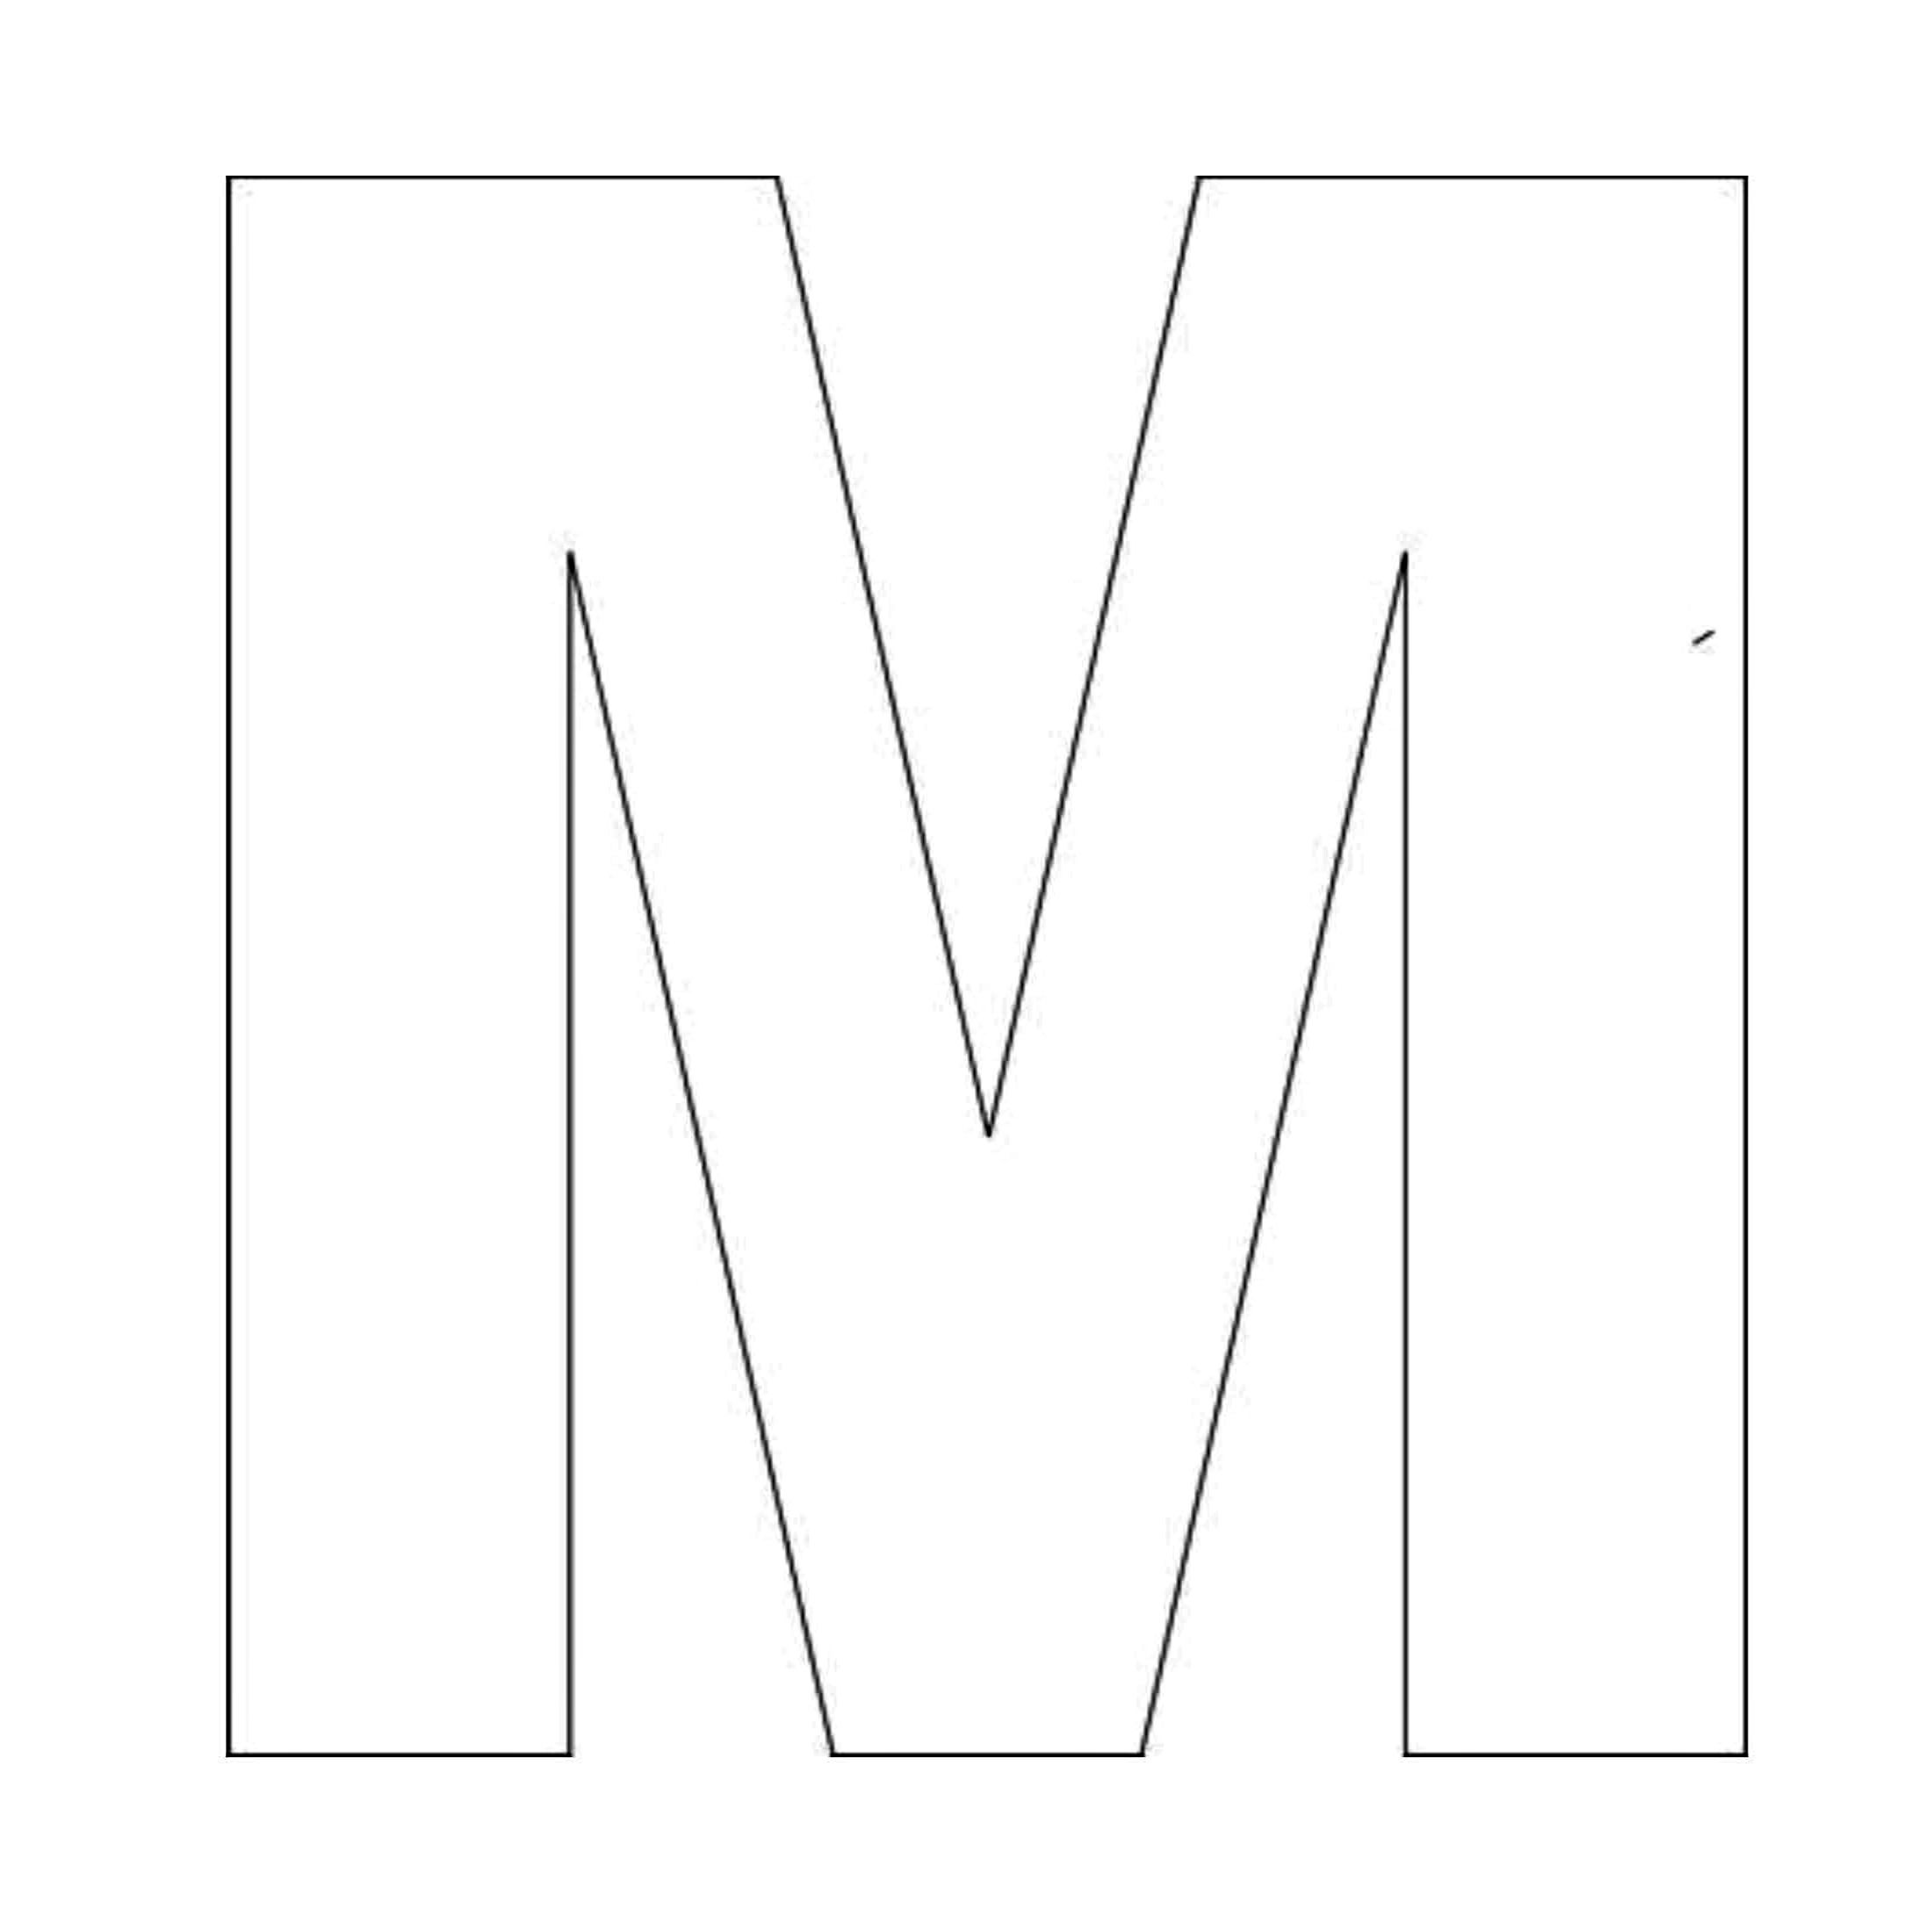 Alphabet Letter M Template For Kids4 2 200 2 200